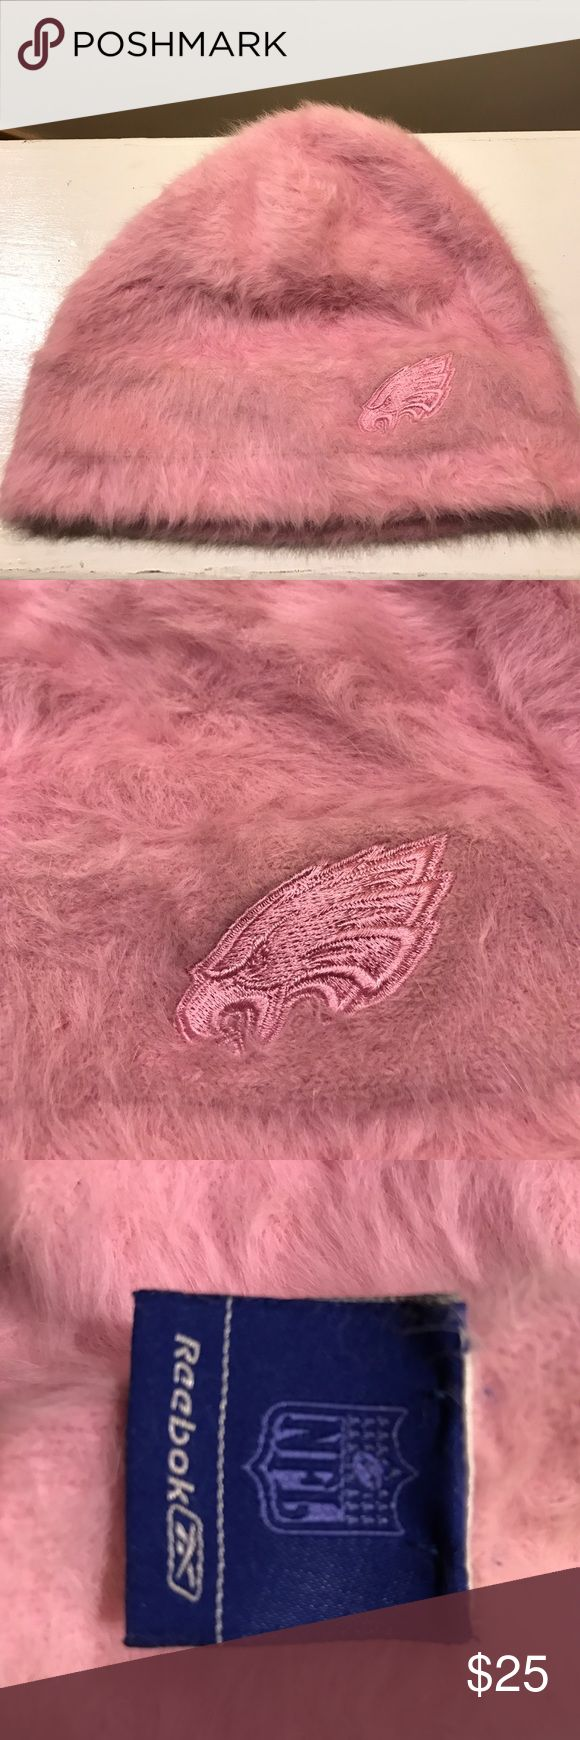 ✨REEBOK NFL ANGORA WINTER HAT✨ Philadelphia Eagles gear! Pink angora hat with Eagles mascot embroidered in front. Reebok Accessories Hats